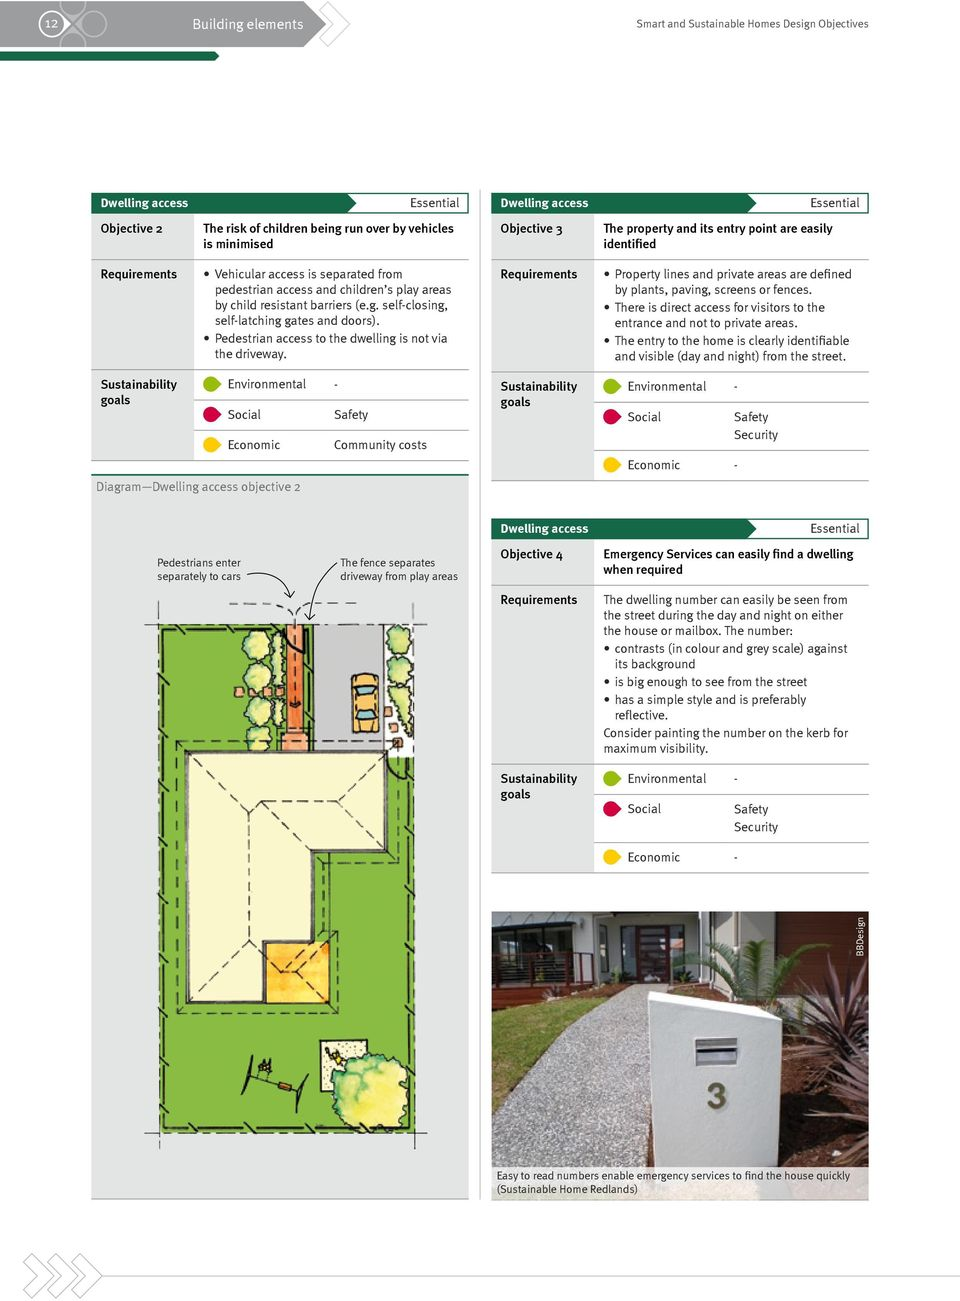 Pedestrian access to the dwelling is not via the driveway. Property lines and private areas are defined by plants, paving, screens or fences.